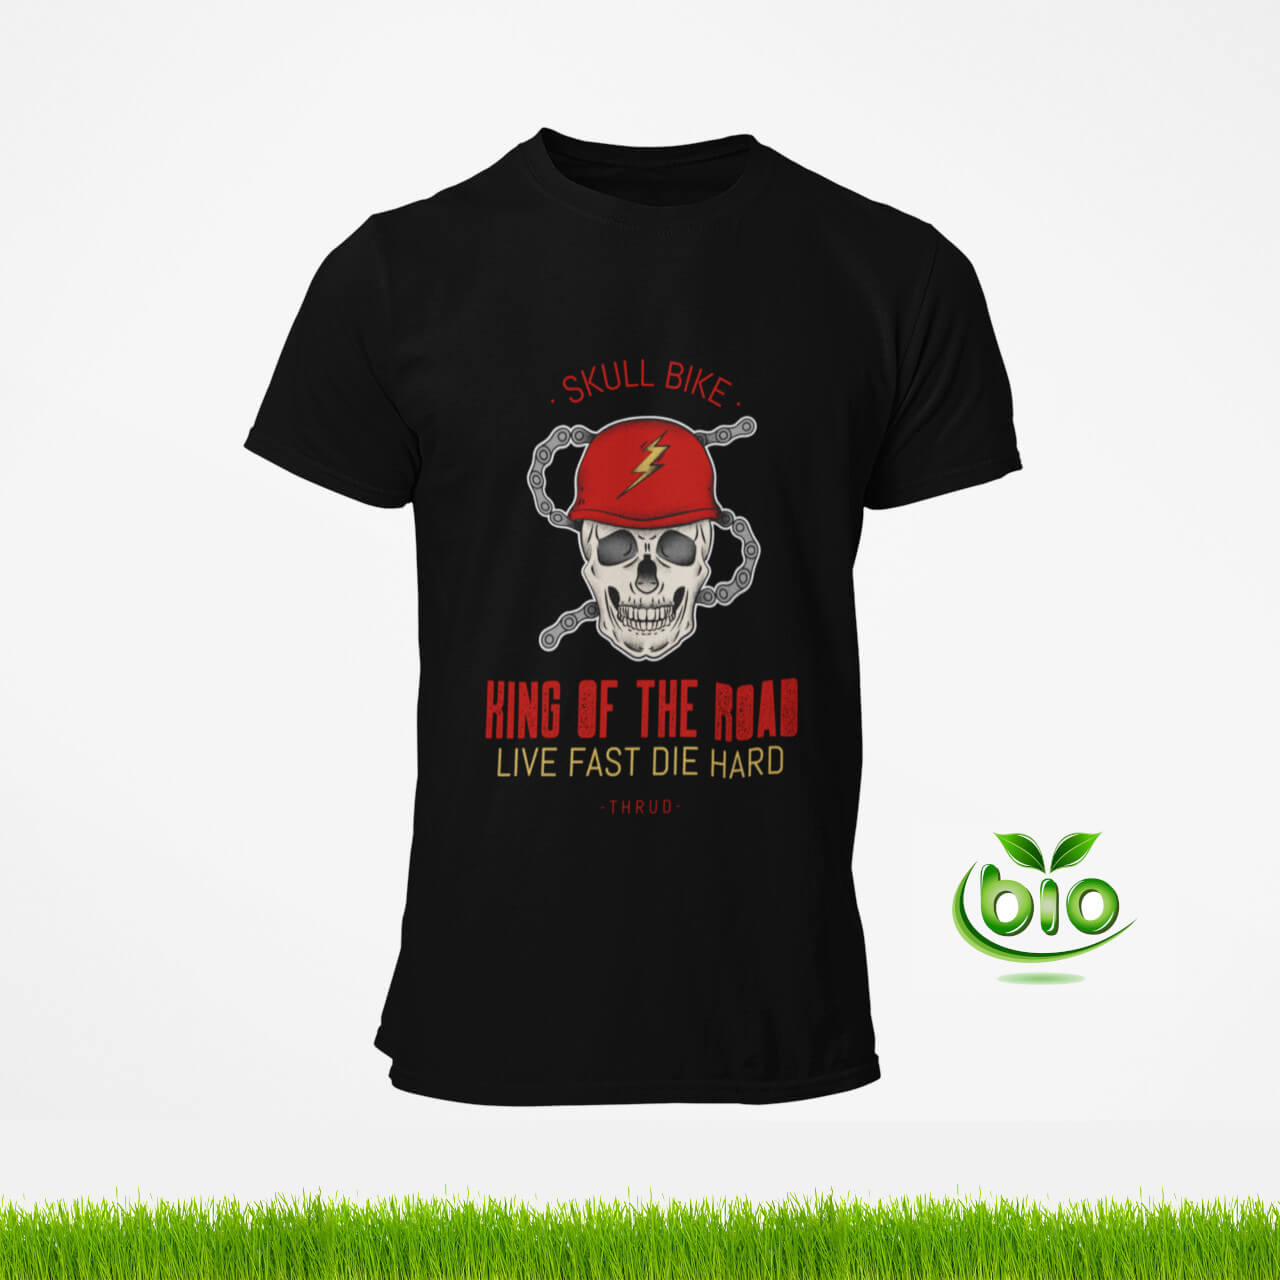 t-shirt motard king of the road de la marque thrud